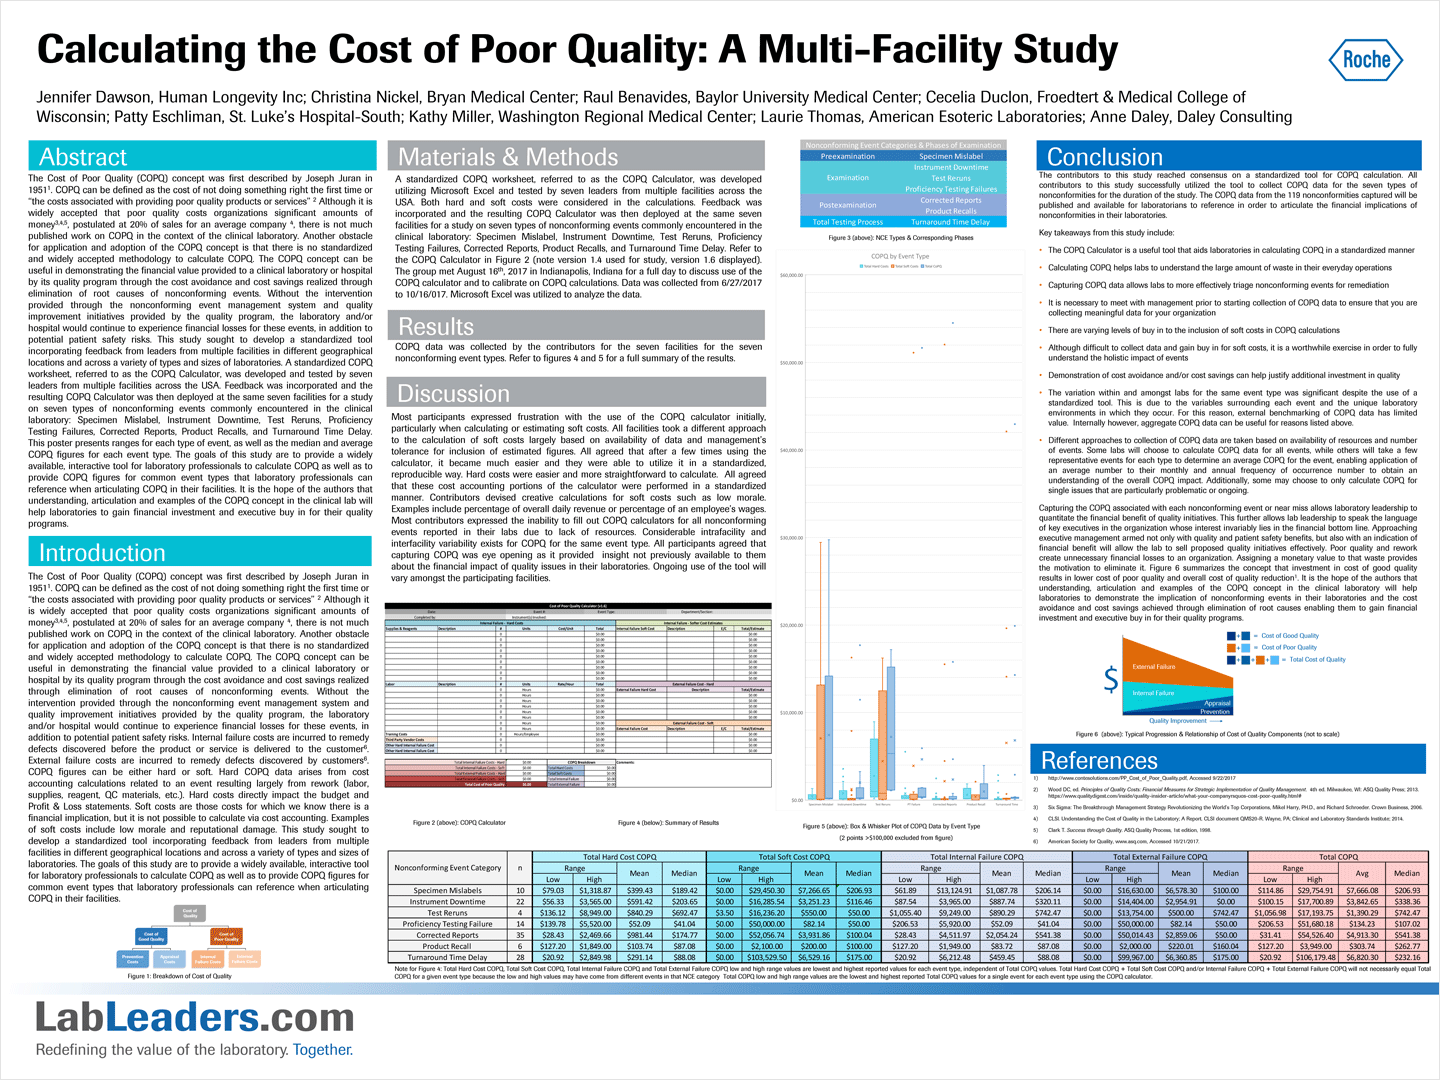 Calculating the Cost of Poor Quality: A Multi-Facility Study